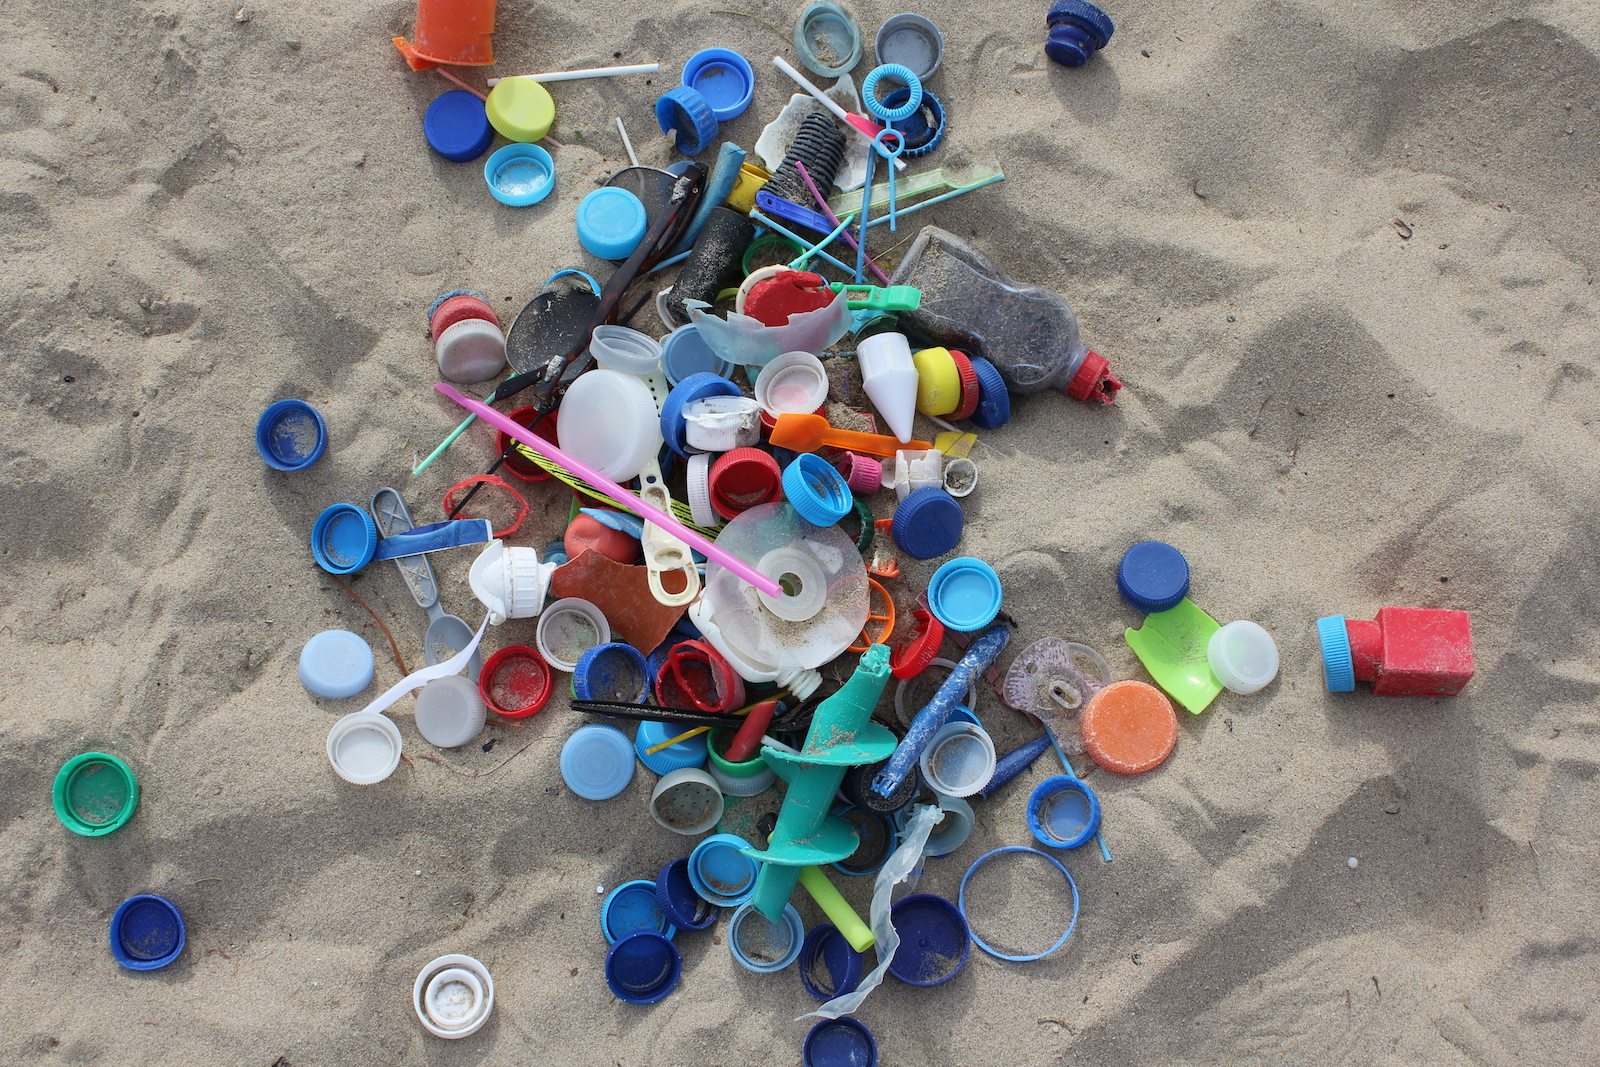 Important Plastic Pollution Bills Moving in Sacramento: The Ocean Needs You!